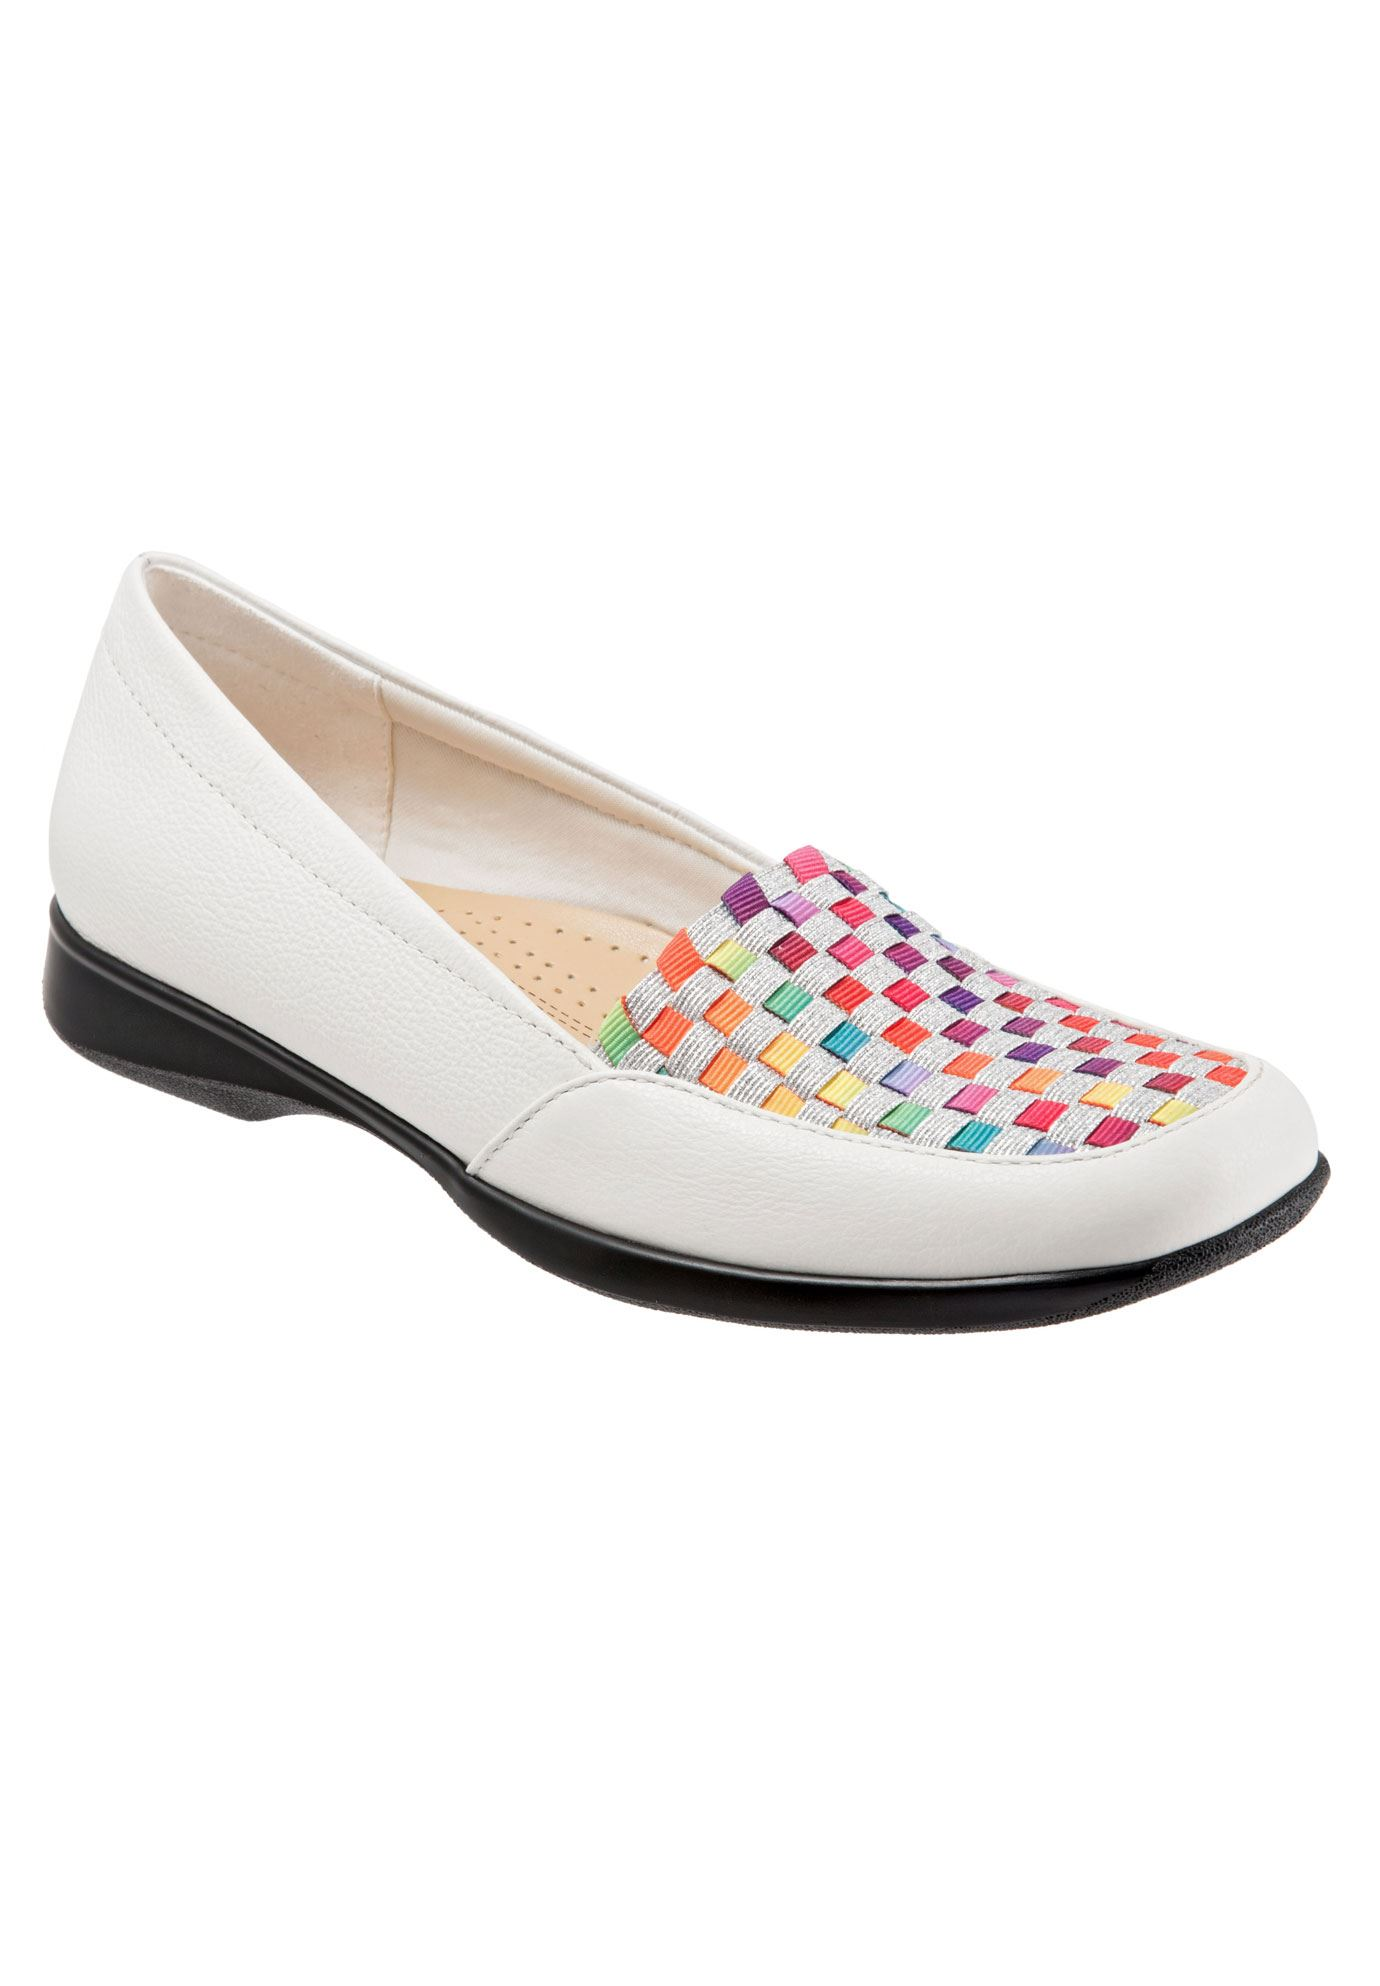 Jenkins Slip Ons by Trotters®,